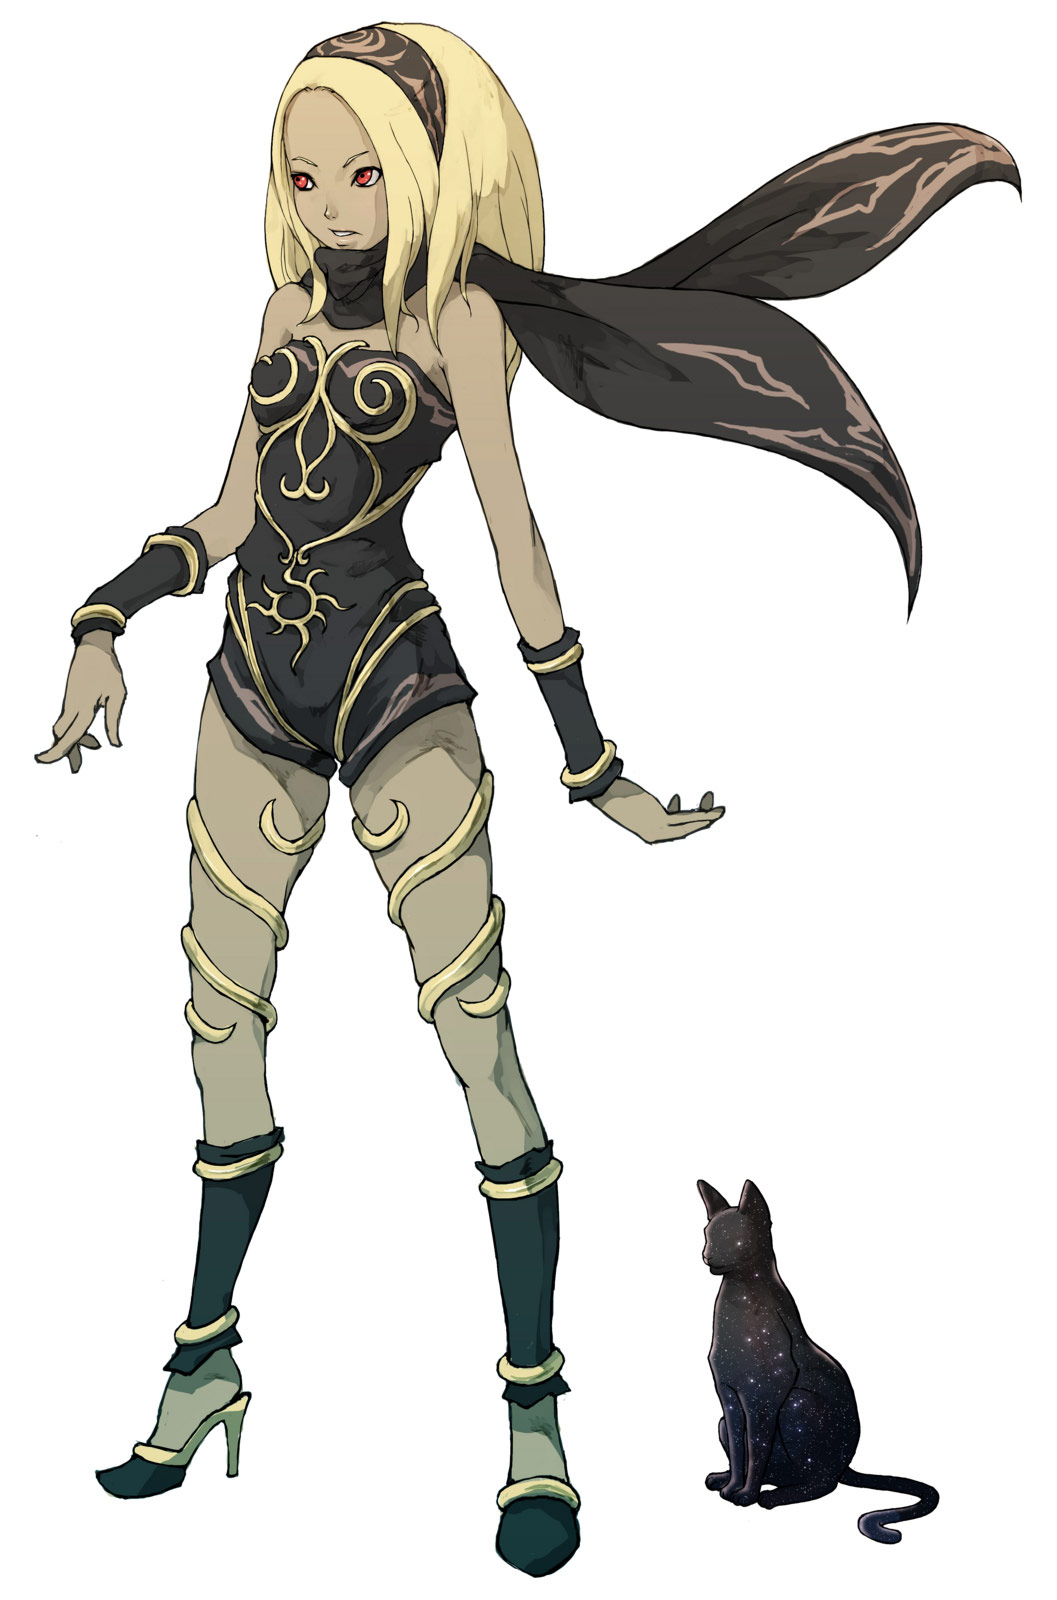 PlayStation All-Stars Battle Royale free DLC characters Kat from Gravity Rush and Emmett Graves from Starhawk #1